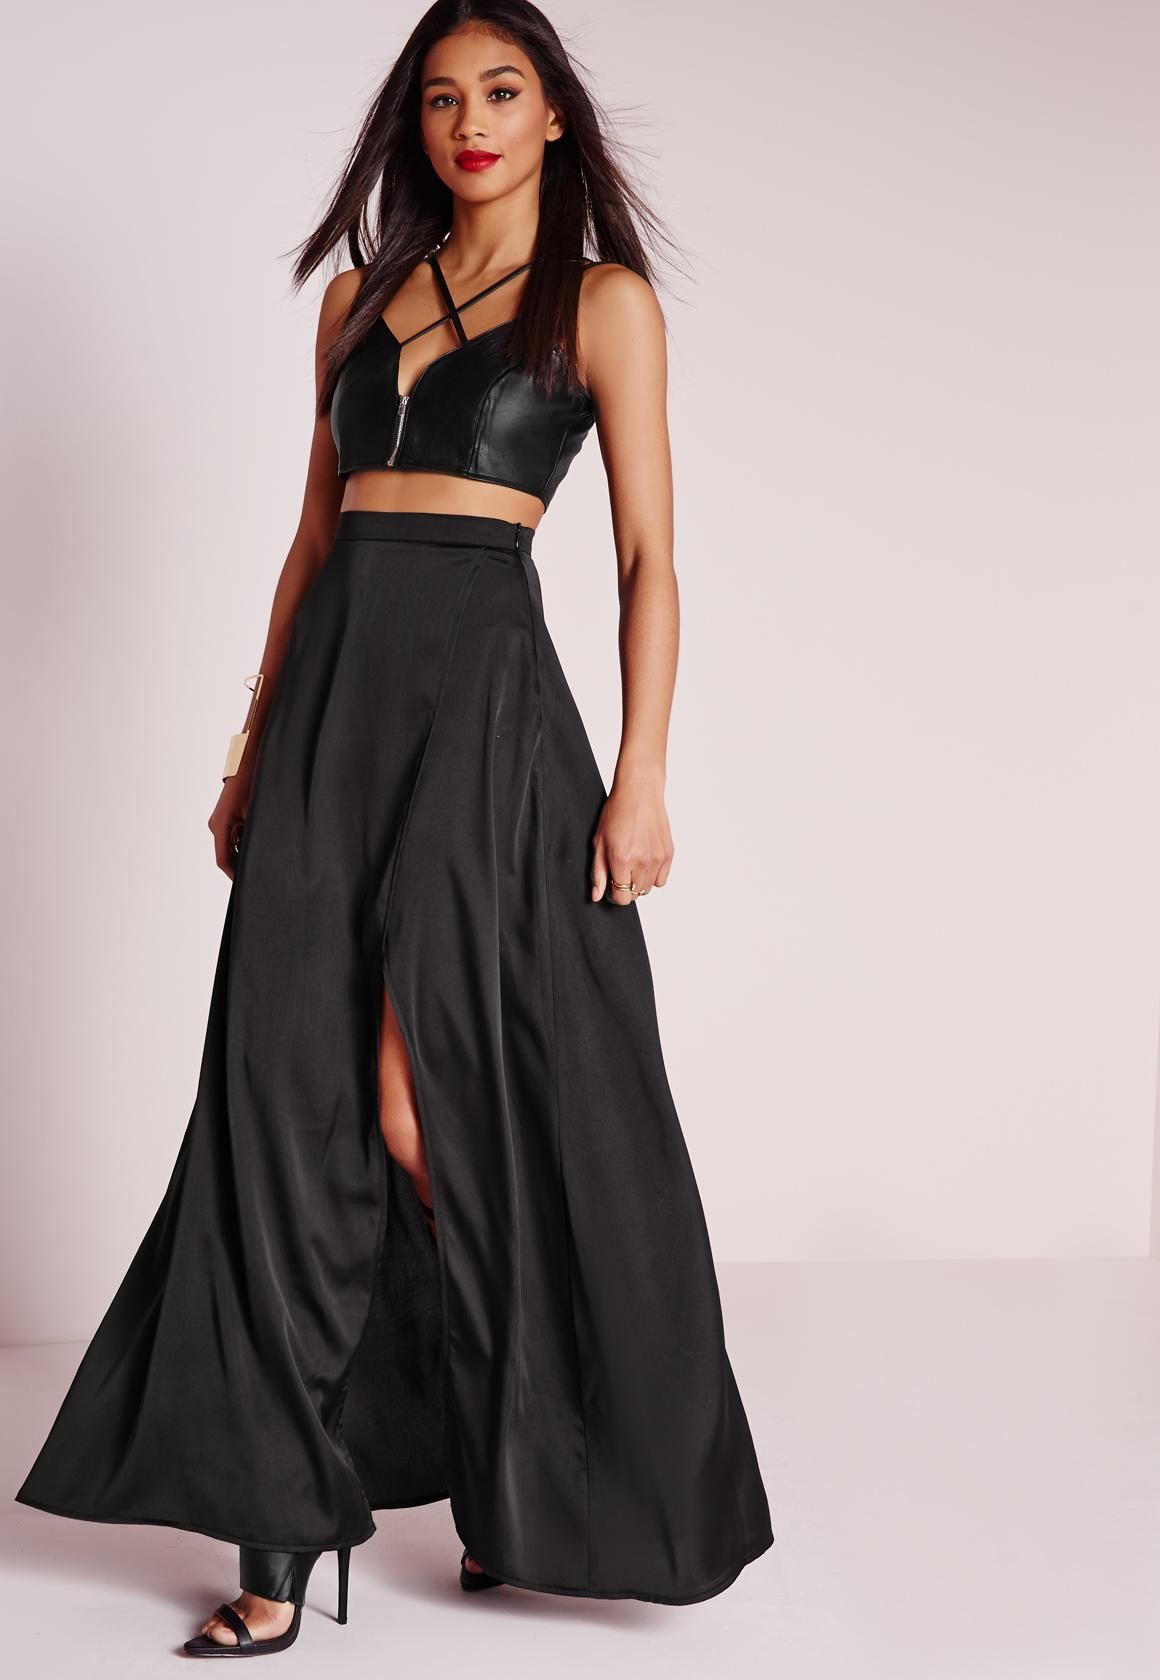 Satin Wrap Maxi Skirt Black - Missguided | VISION BOARD: Prom 2k18 ...